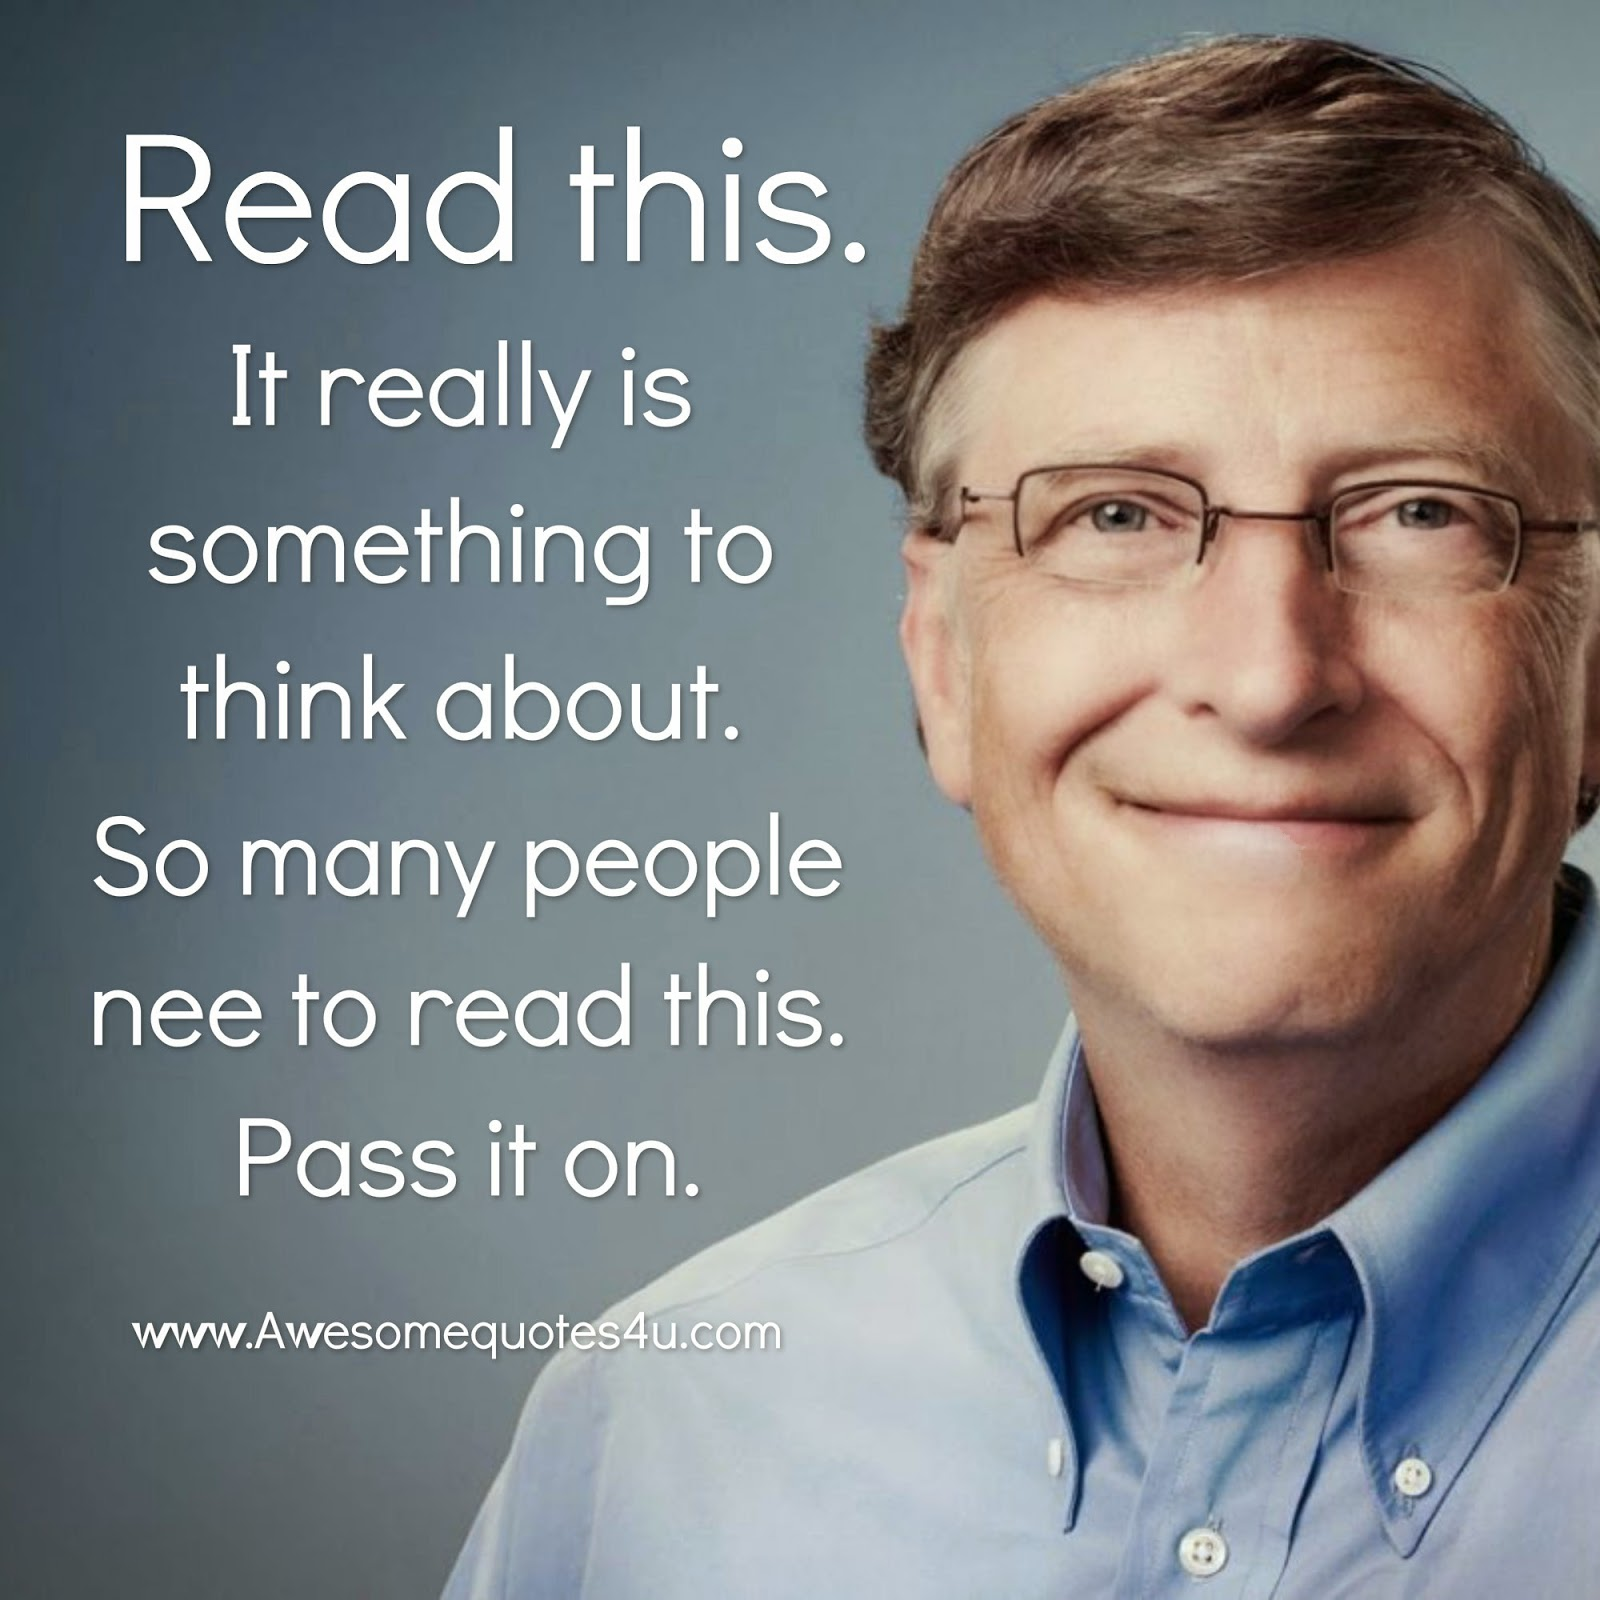 management skills of bill gates Bill gates leadership & personality traits 1 early life born on october 28, 1955 in seattle, washington, america education 1967 bill gates had a normal schooling at the lakeside private school 1973 he entered harvard university but dropped out in 1975 for the sake of.